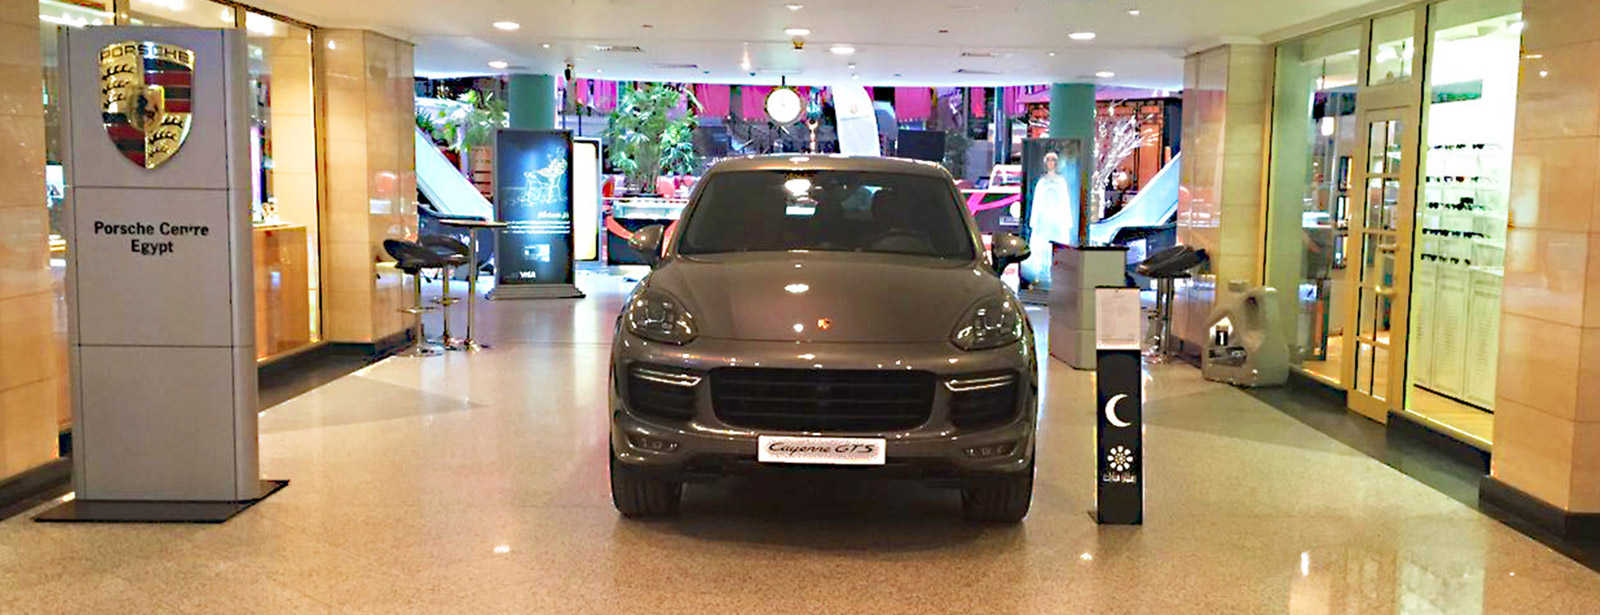 Until Saturday Juli 2nd, 2016 | Porsche Cayenne GTS in First Mall